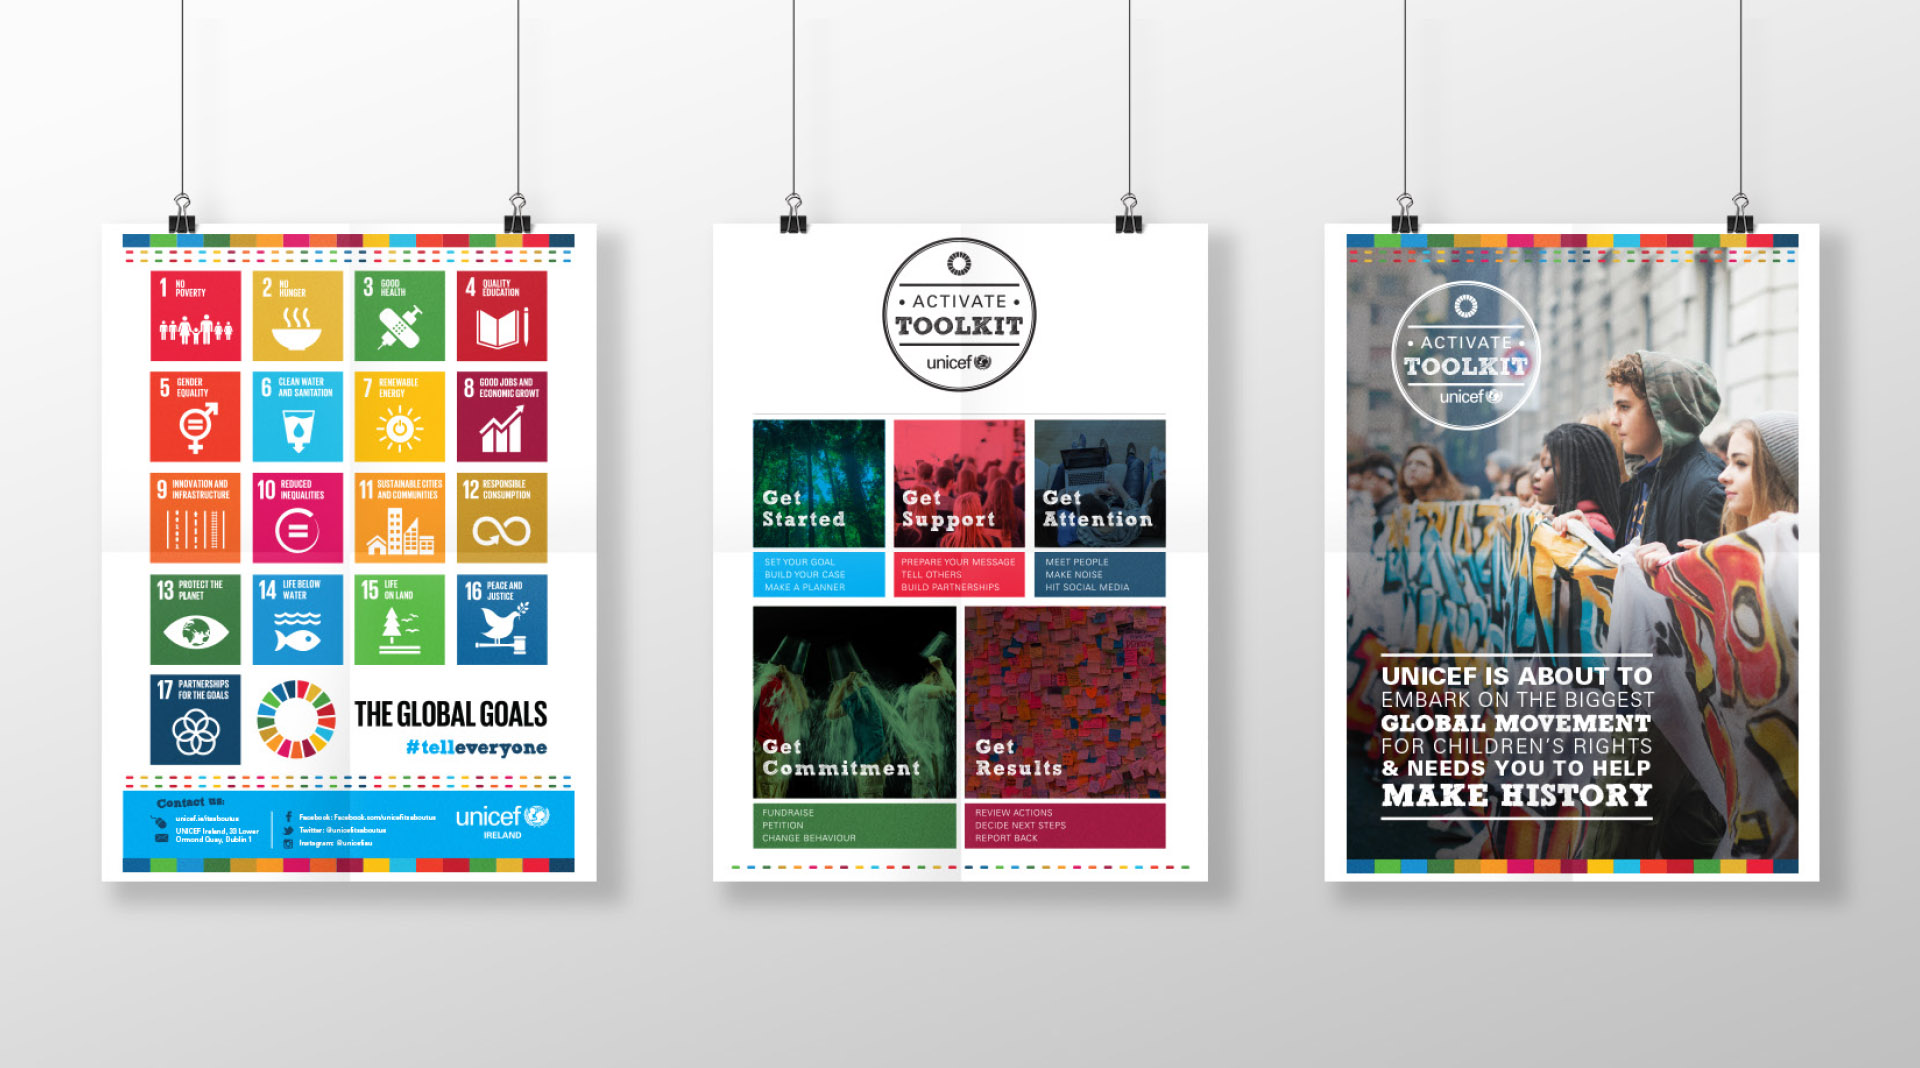 Unicef Global Goals Posters